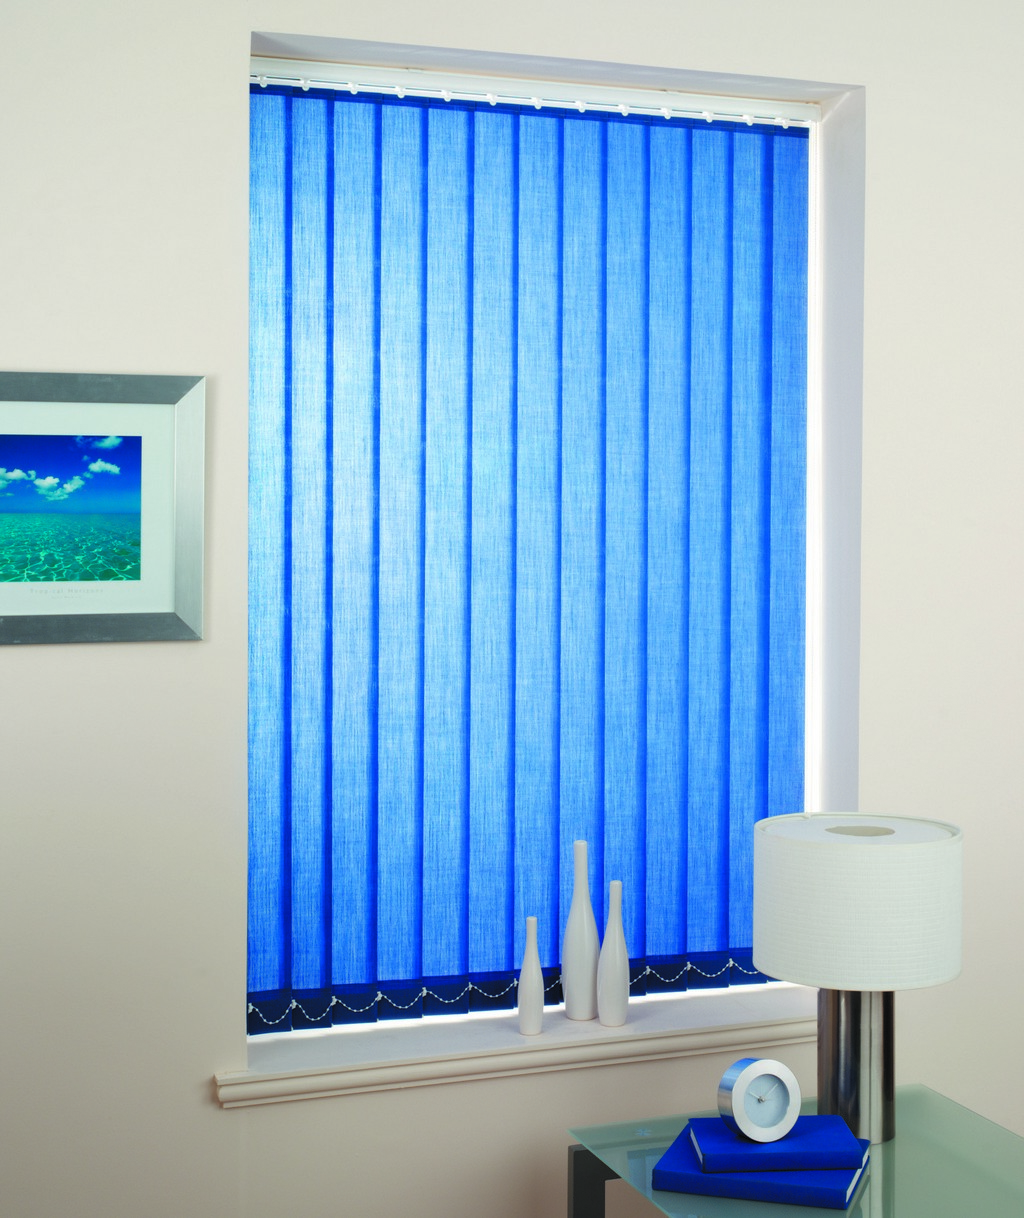 blinds to keep heat out blocker skylight vertical screentex blue blinds to keep heat out in the summer expression